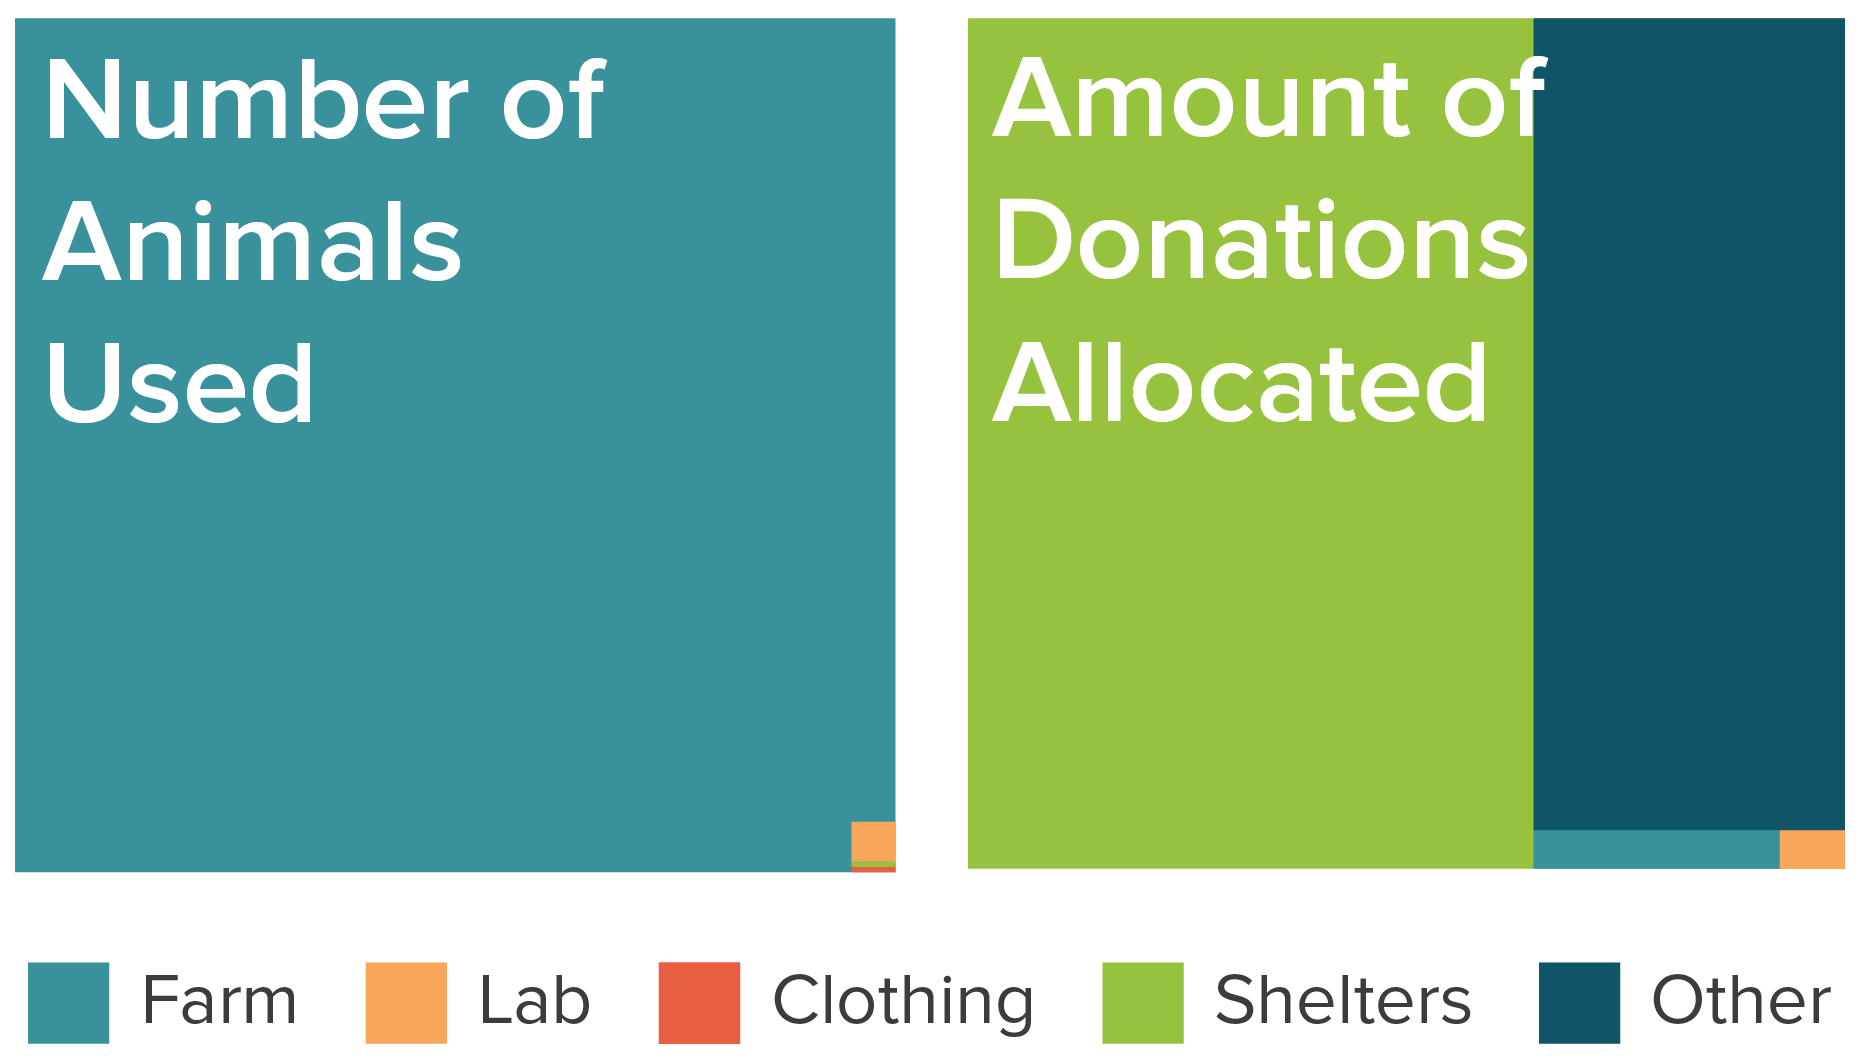 Number of animals used in the U.S. versus the amount of charity funds allocated